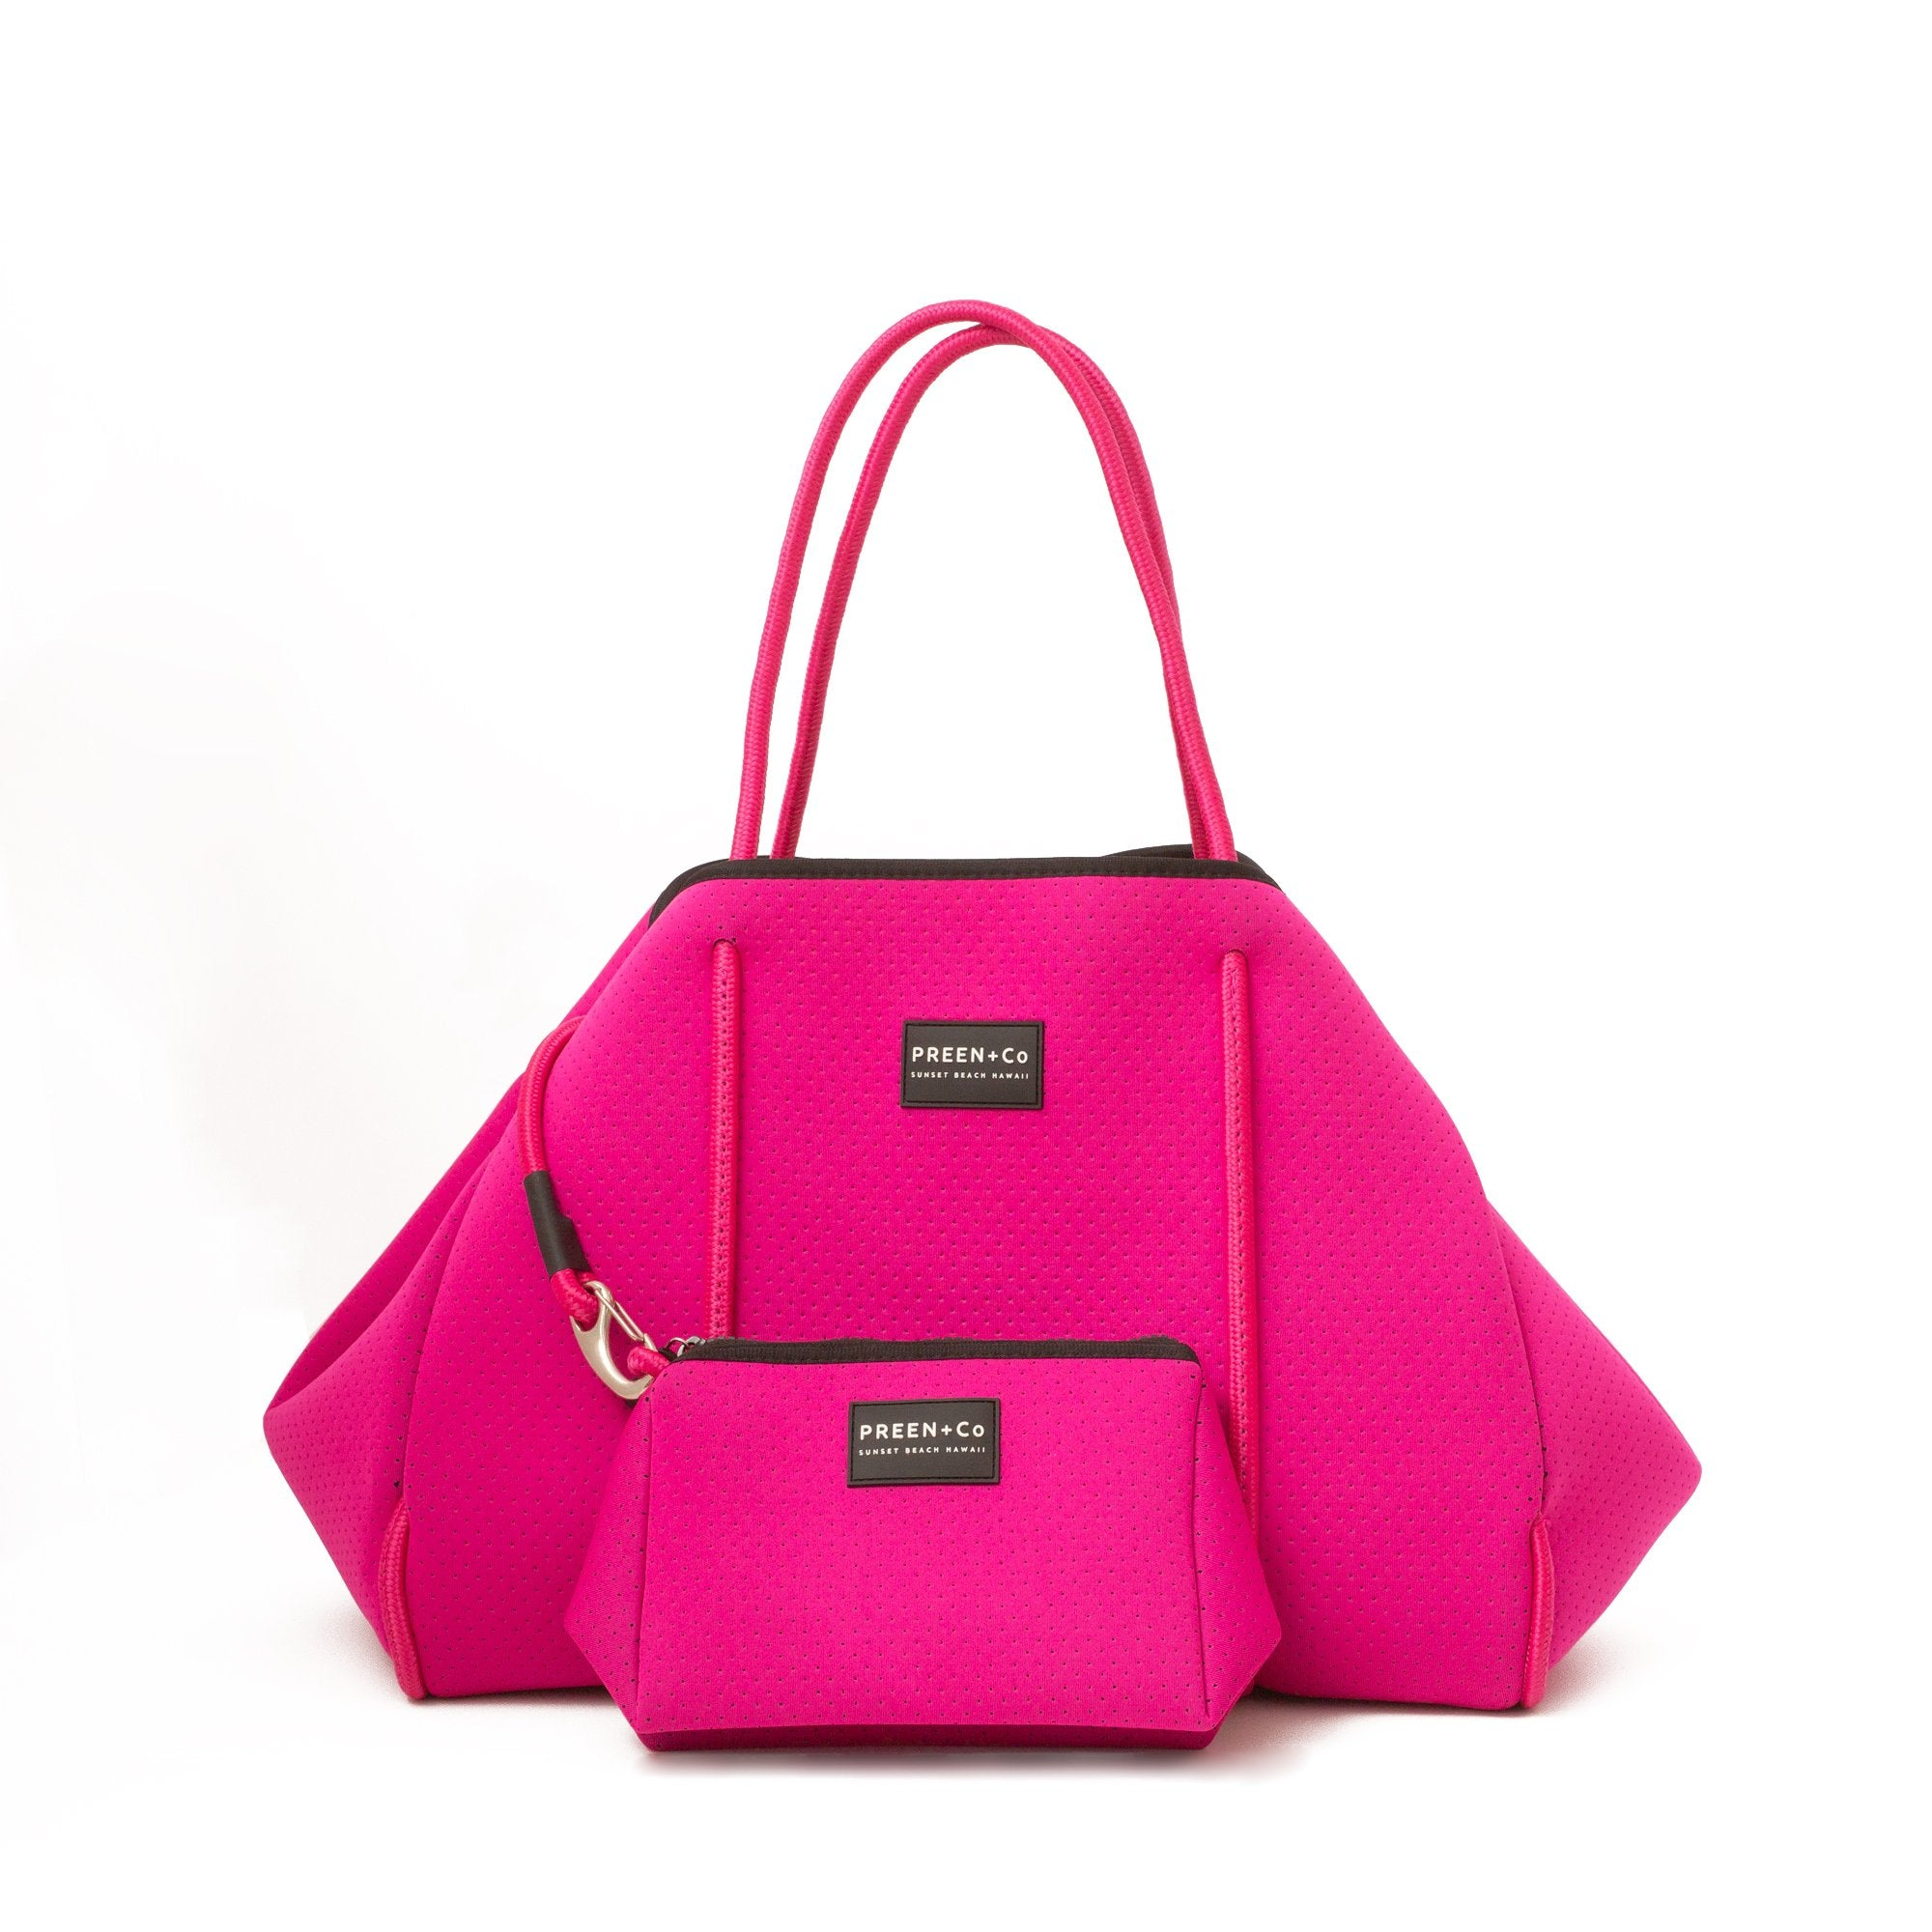 The Neo-Preen Tote Pink - PREEN+Co